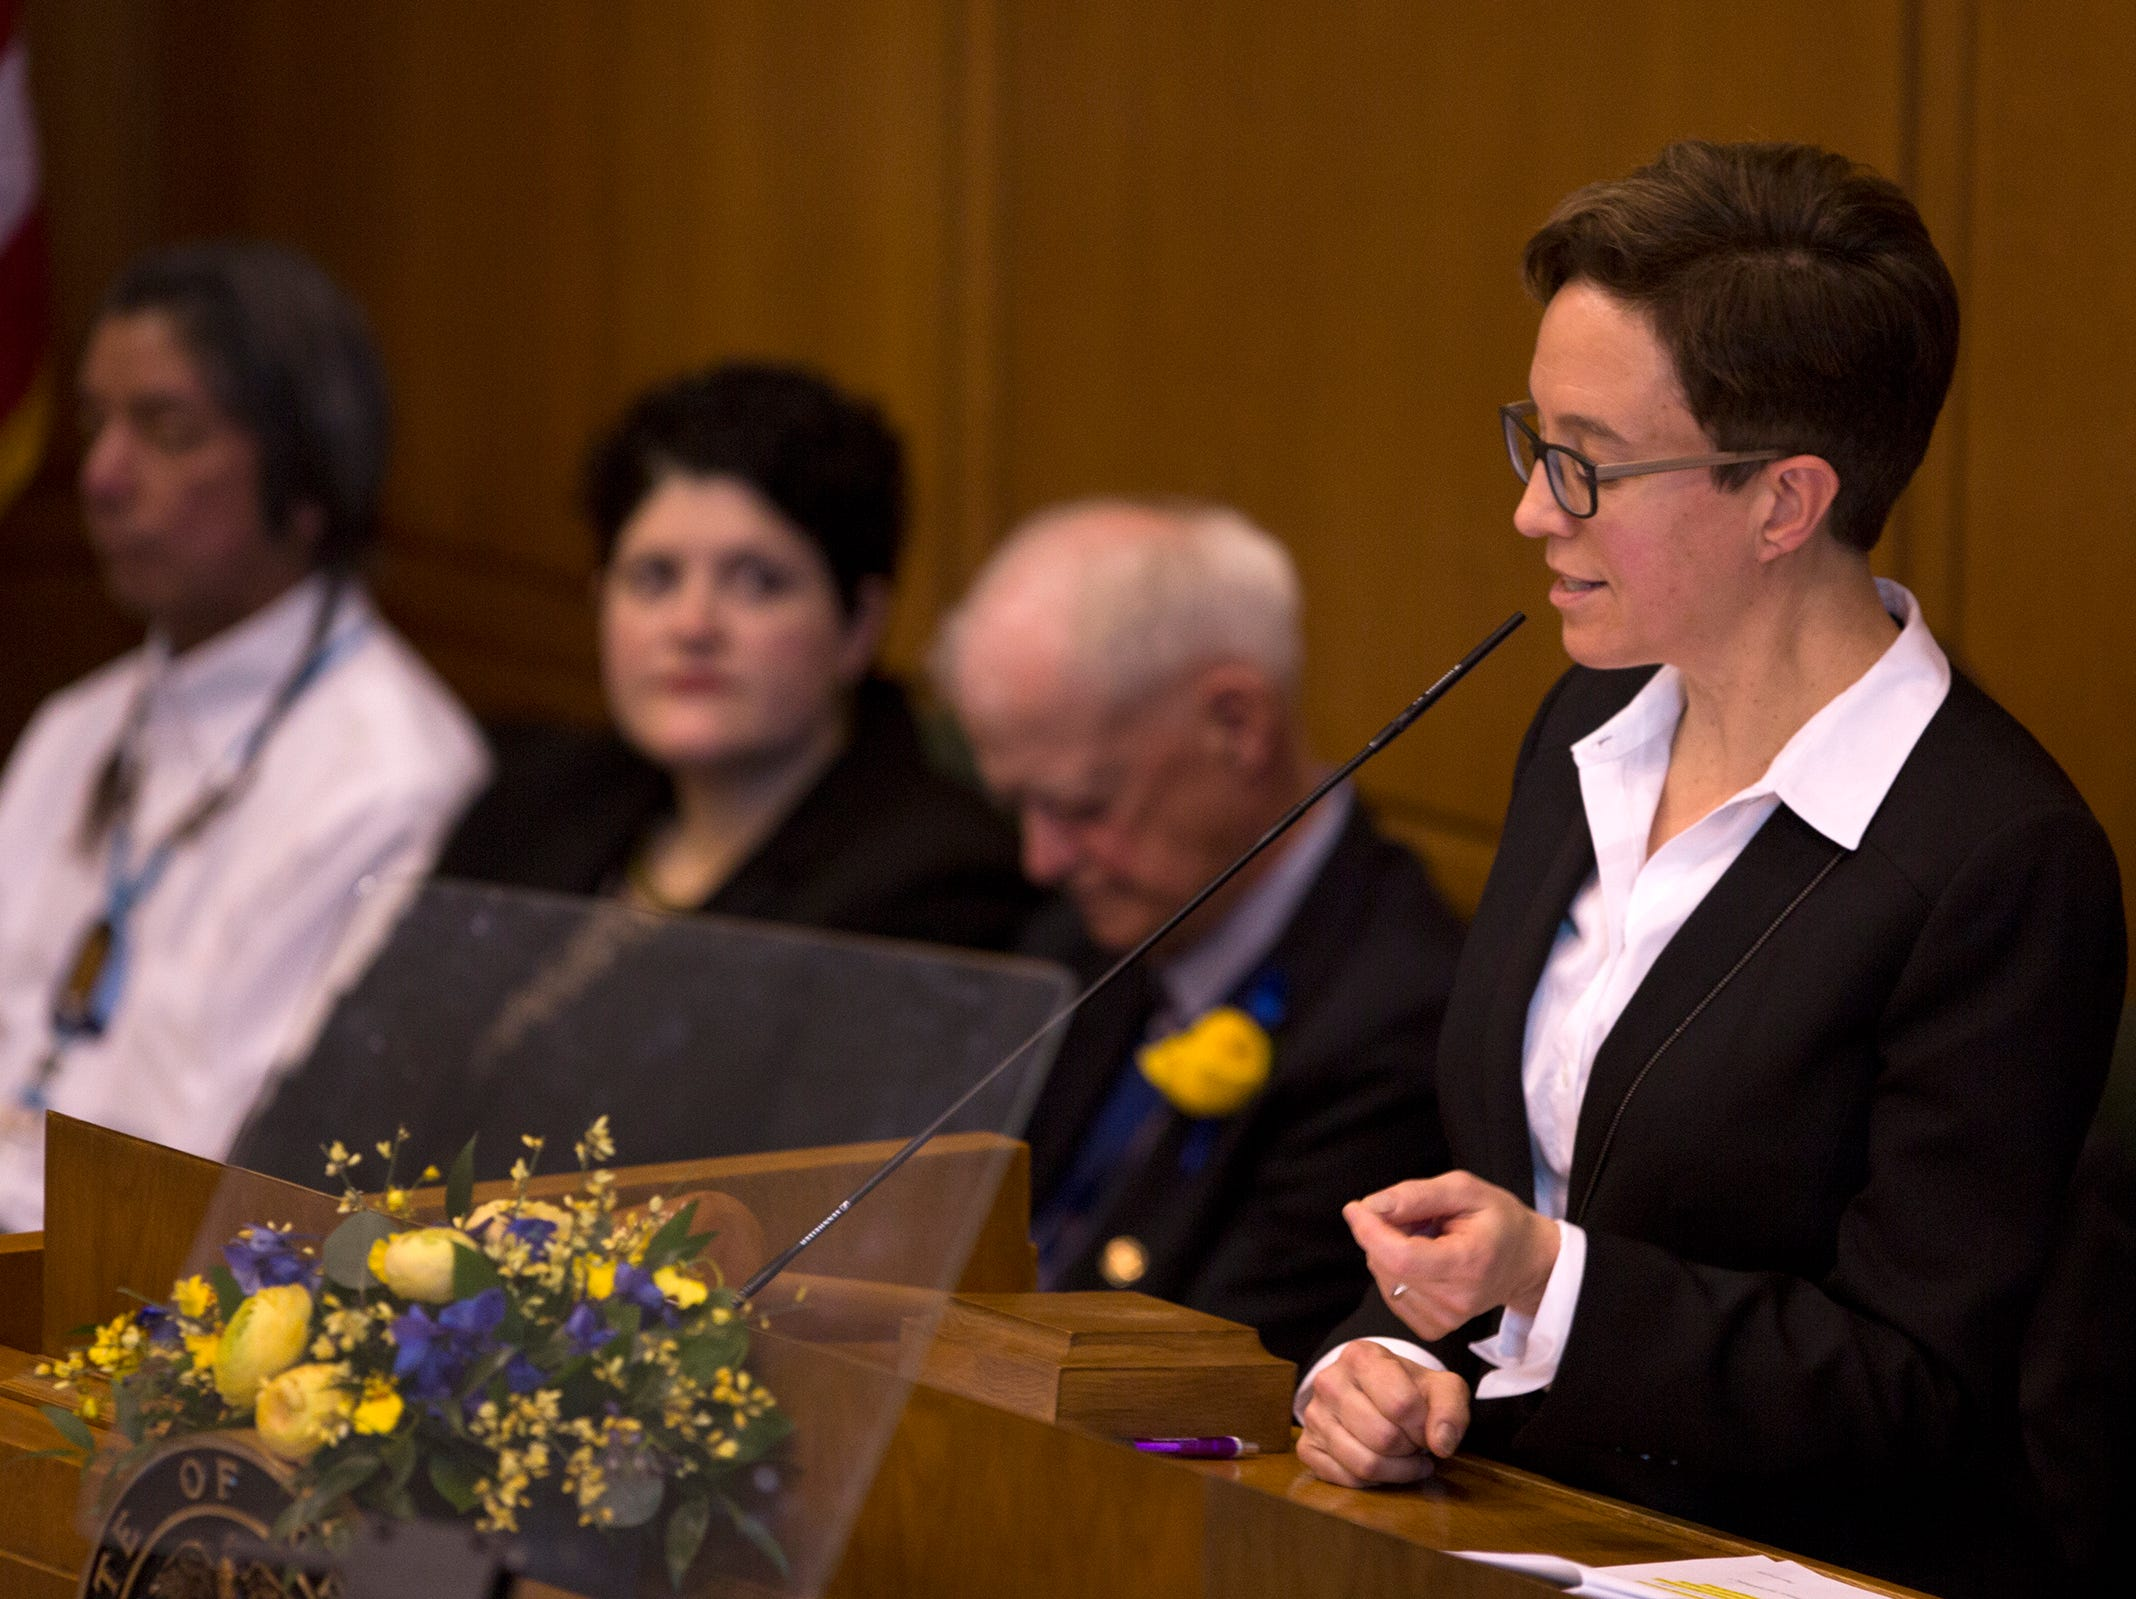 Speaker of the House, Tina Kotek, speaks before Governor Kate Brown addresses the state legislature at her inauguration at the Oregon State Capitol on Jan. 14, 2019.